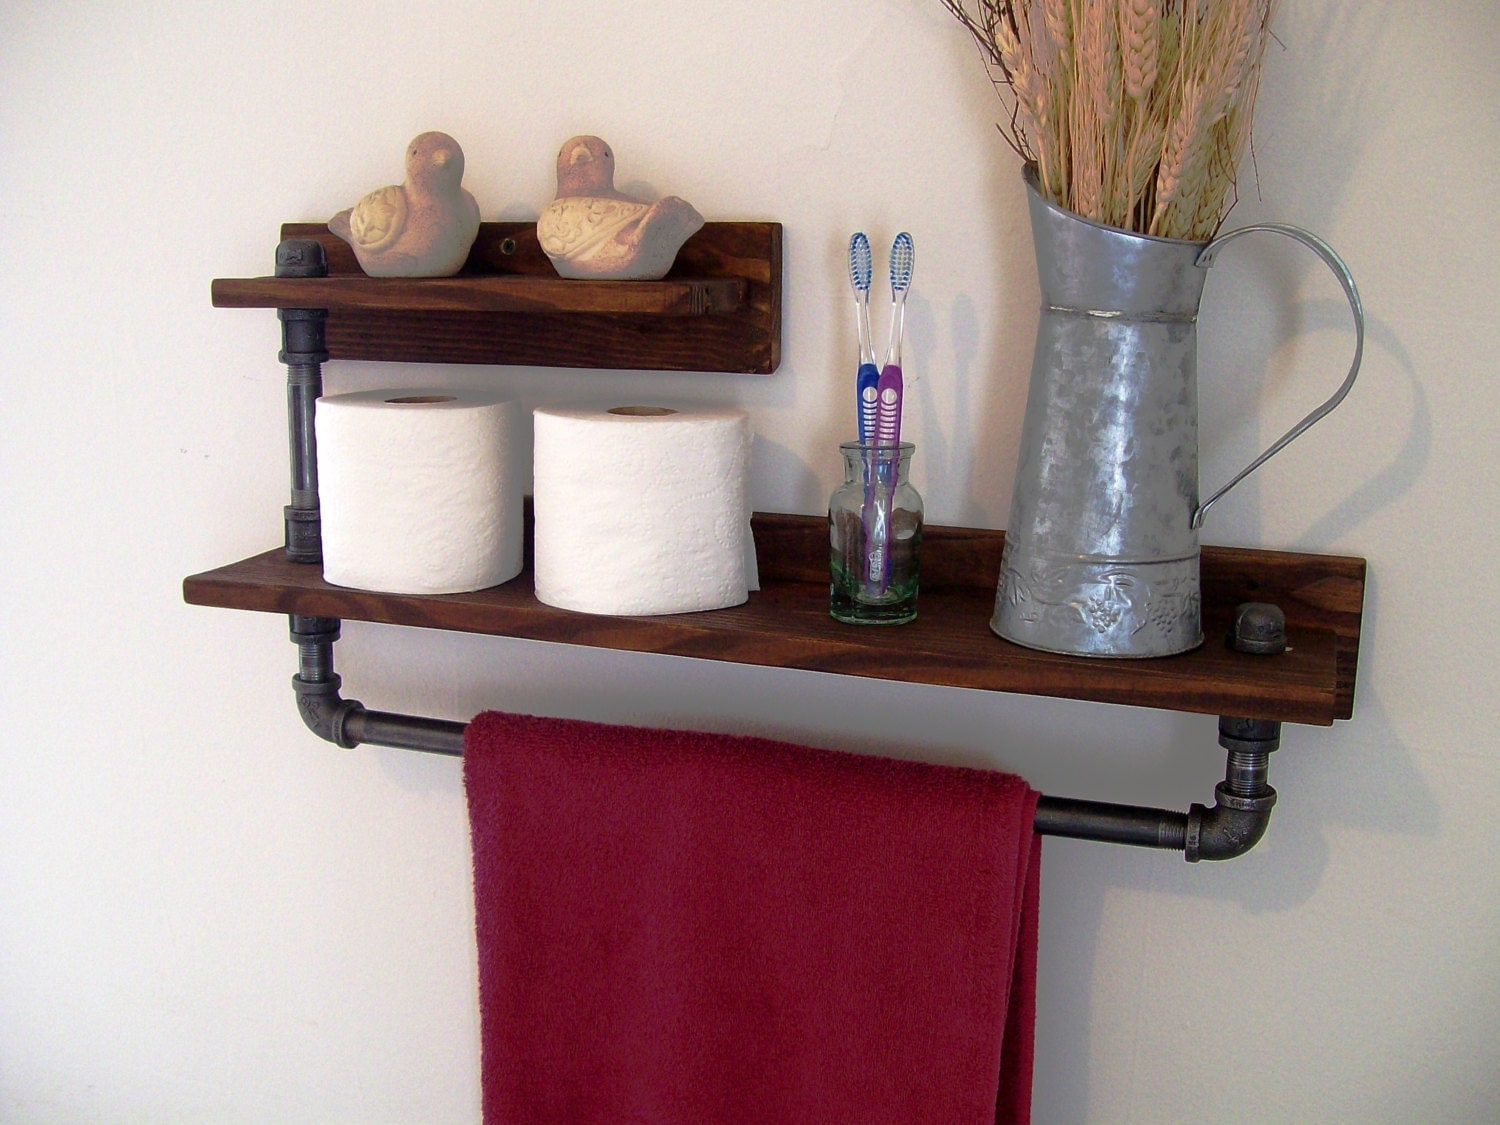 rustic industrial 2 tier towel rack towel bar bathroom shelf. Black Bedroom Furniture Sets. Home Design Ideas